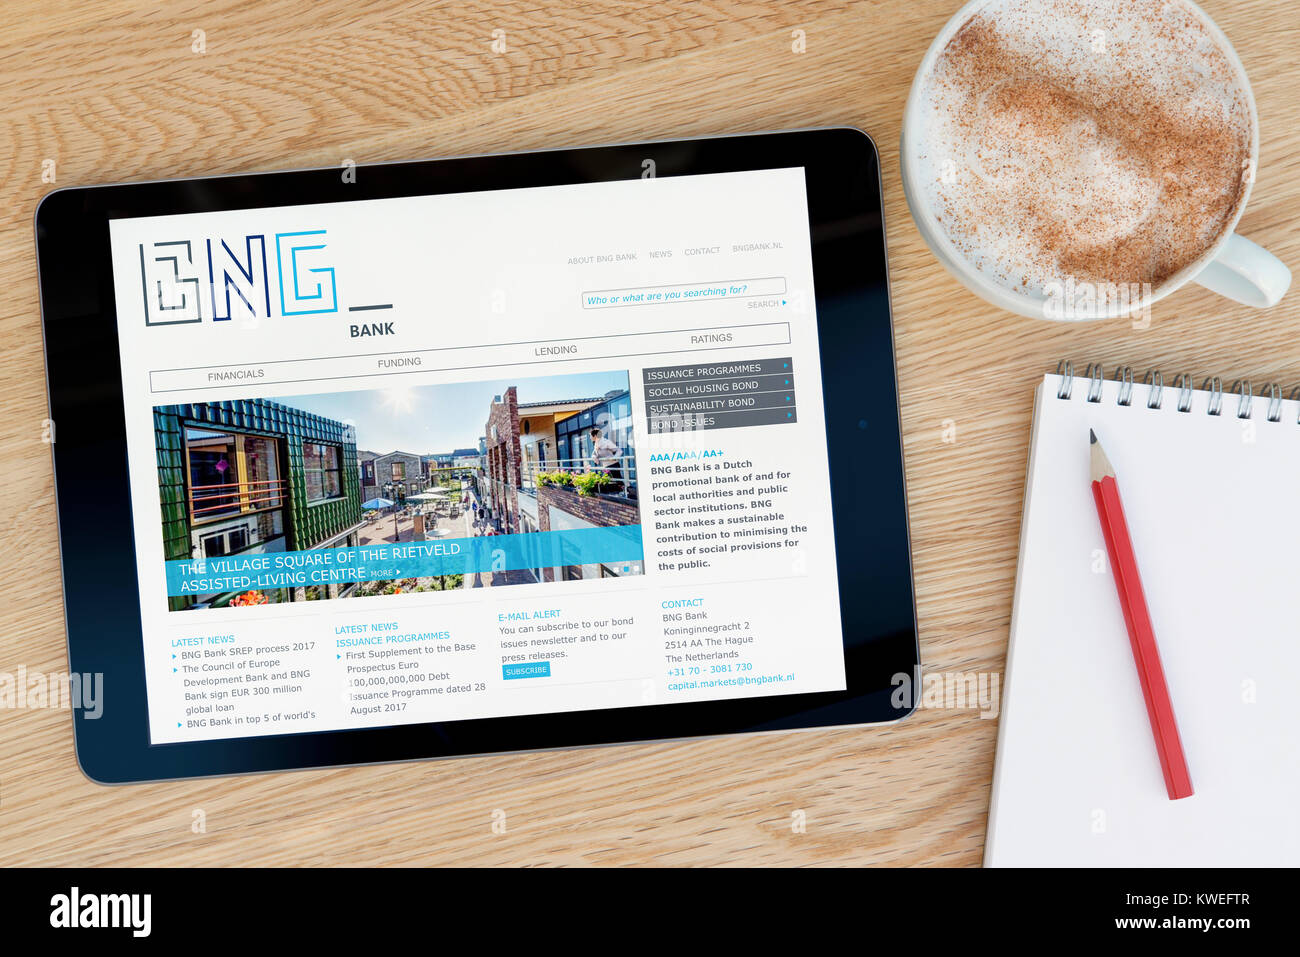 The BNG Bank website on an iPad tablet device, resting on a wooden table beside a notepad, pencil and cup of coffee - Stock Image